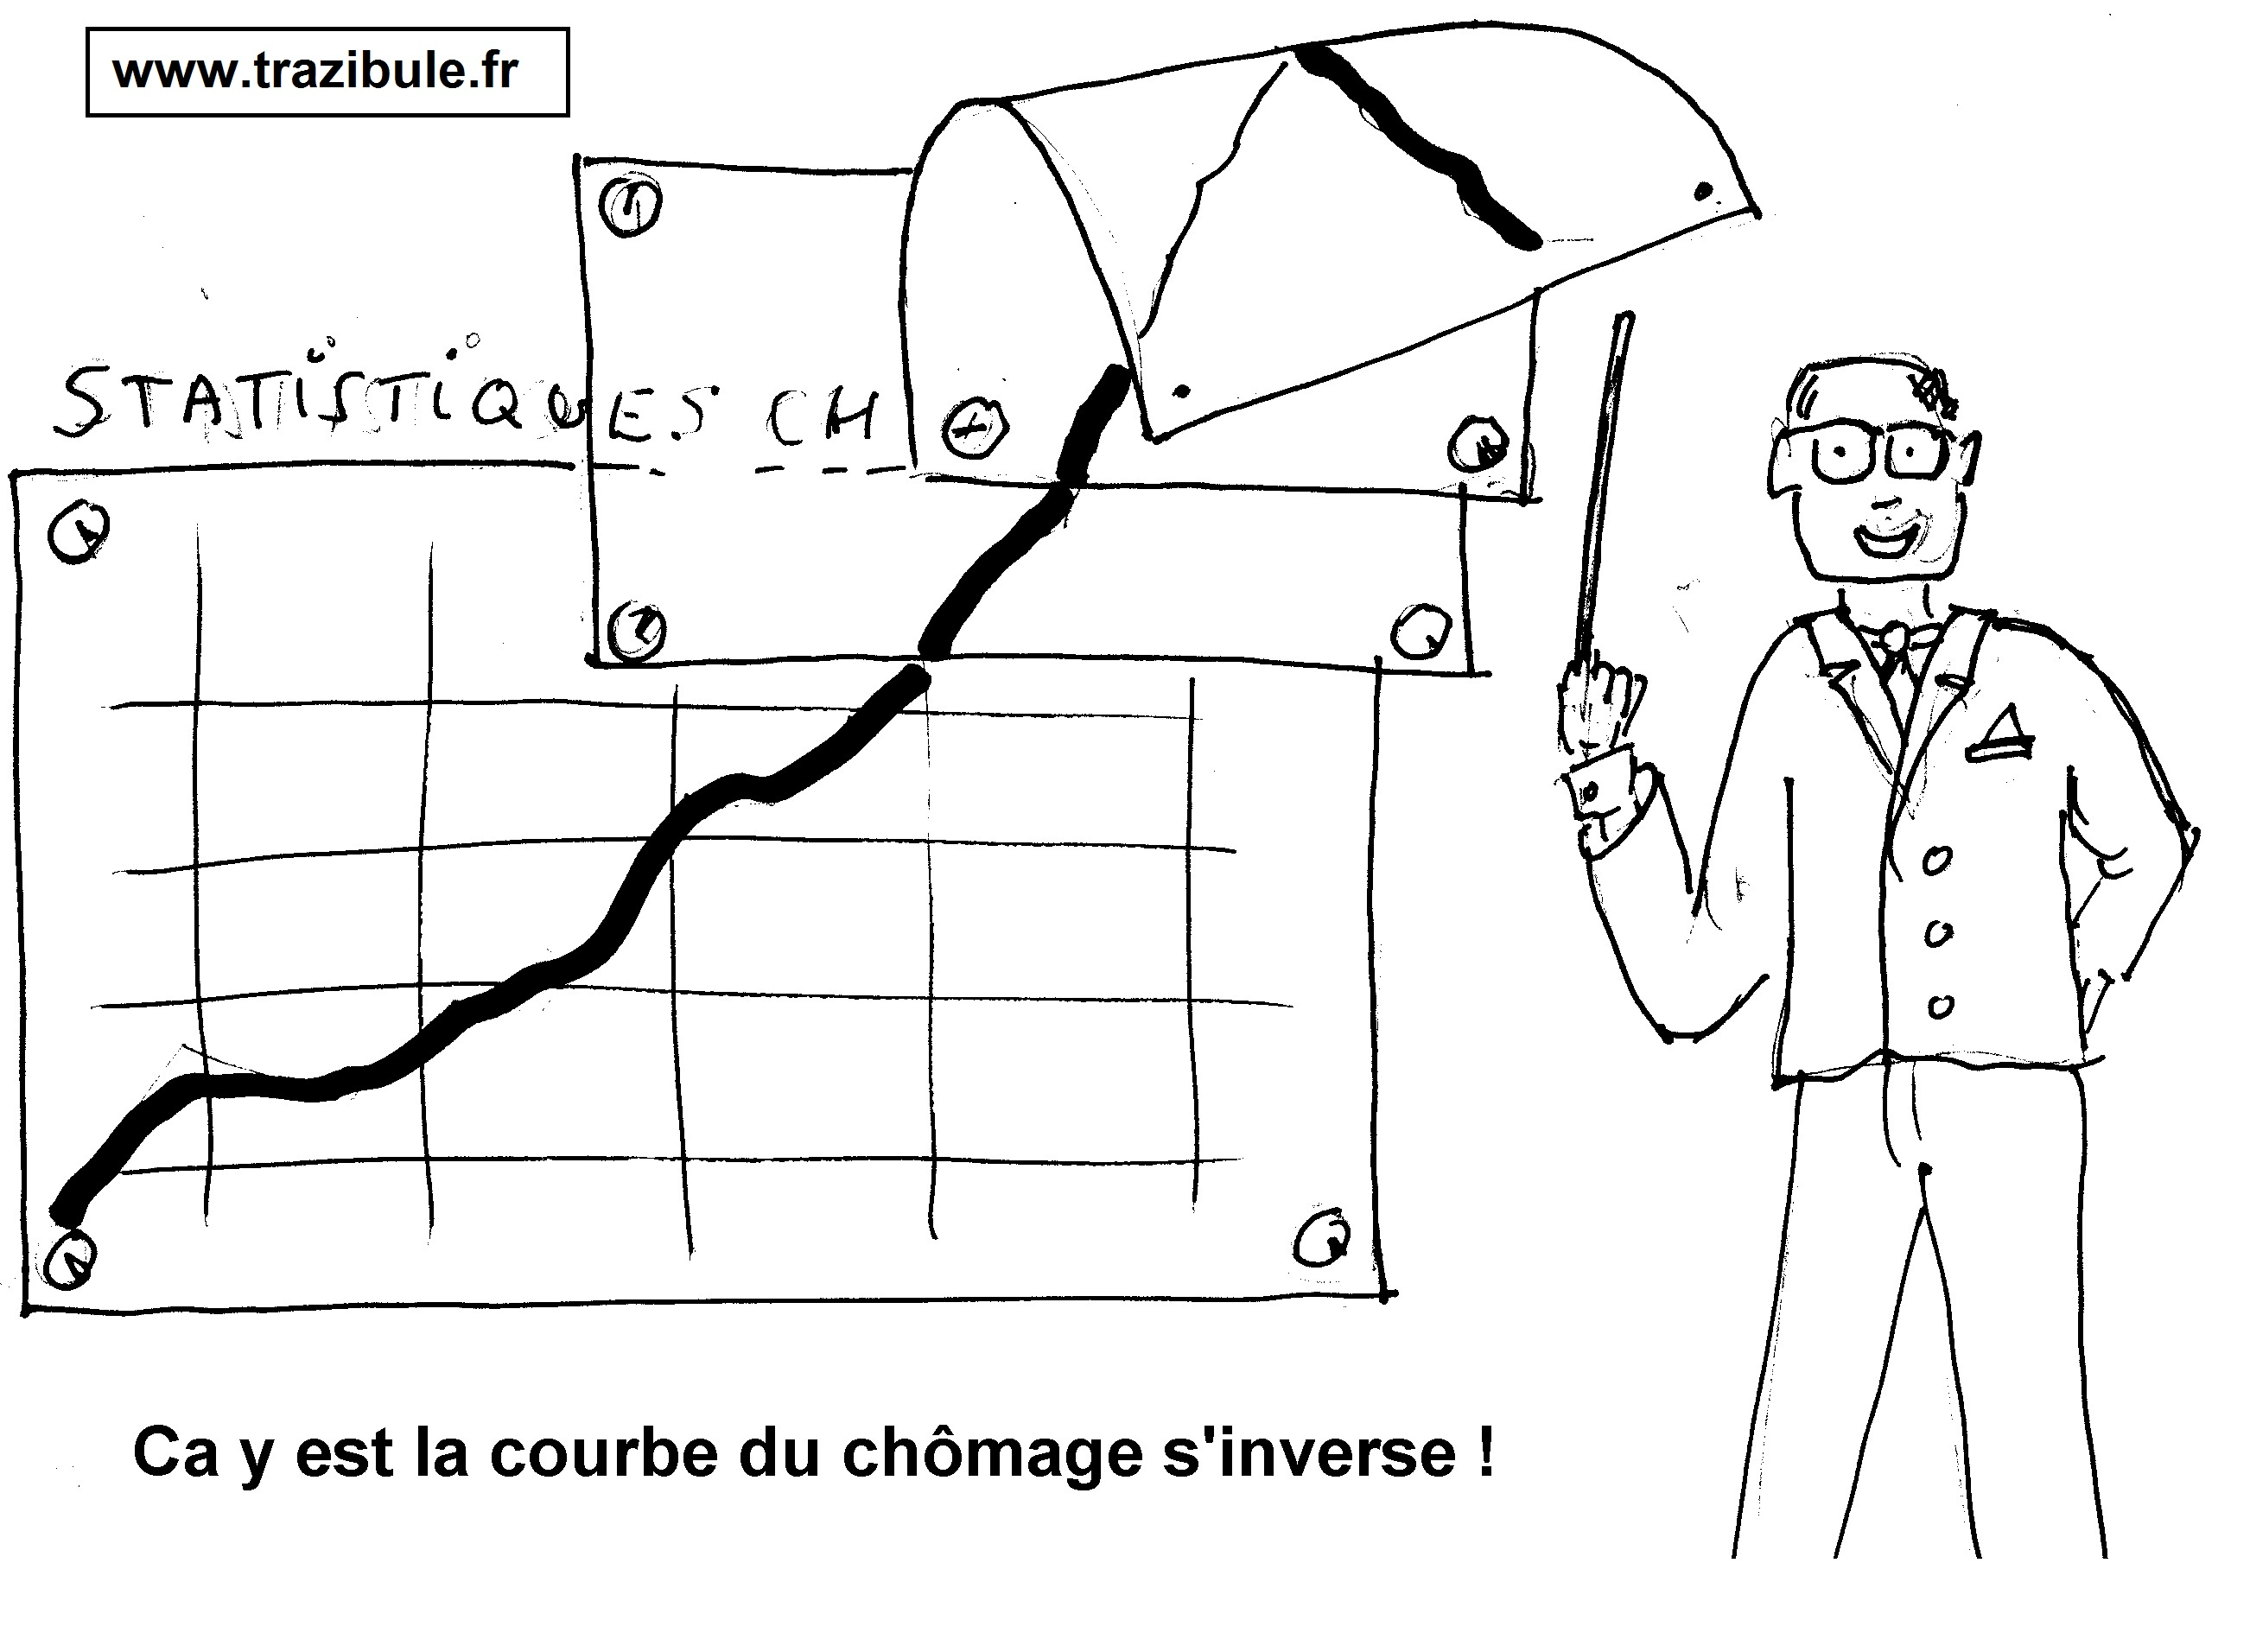 images/courbe_du_chomage.jpg